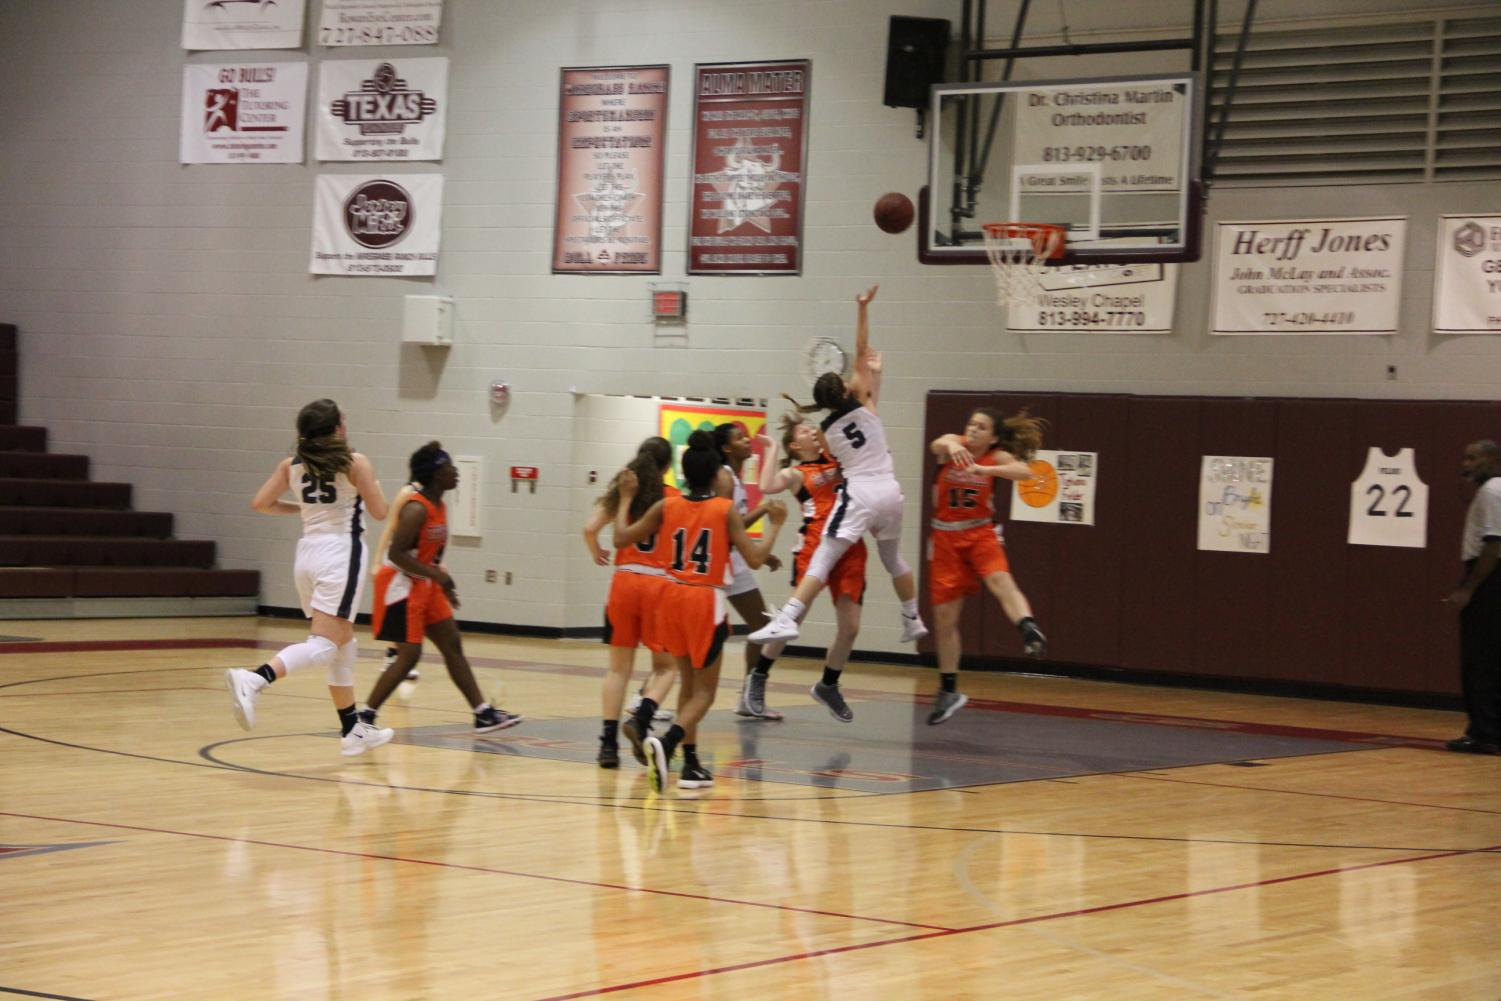 Junior Madison Gant drives to the basket looking to score.